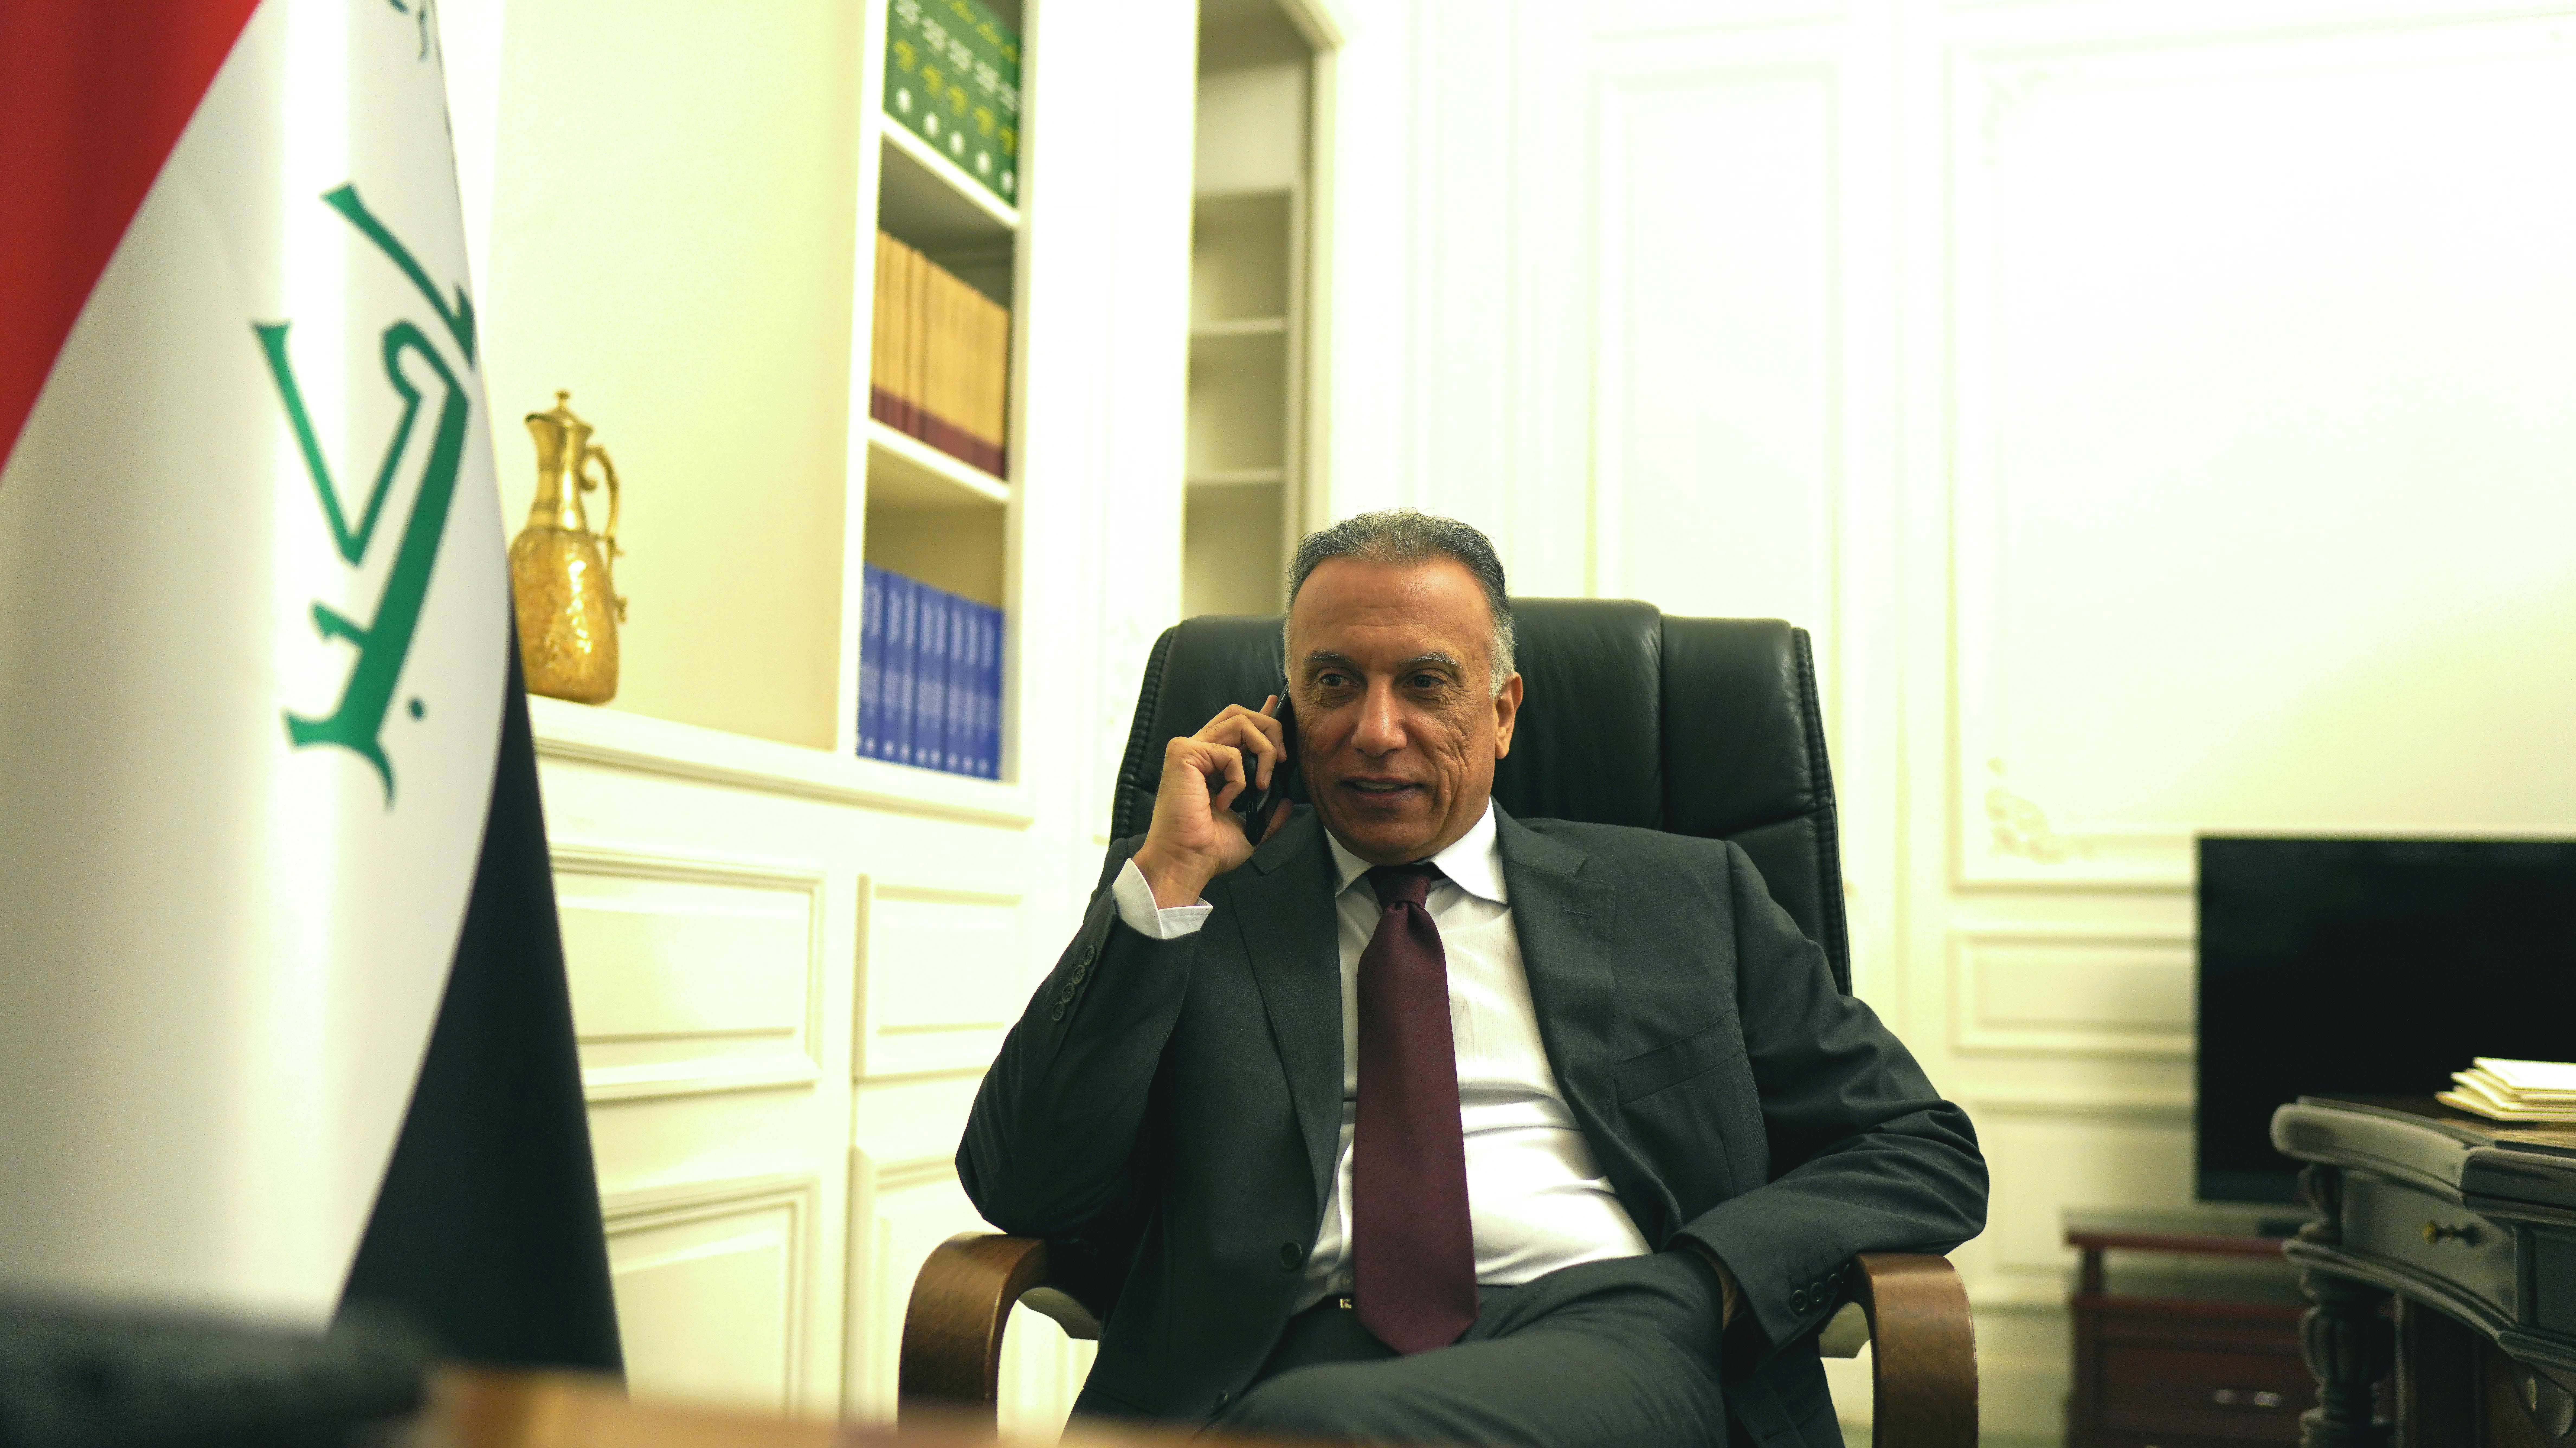 Iraqi Prime Minister Mustafa al-Kadhimi uses his mobile phone at his office in Baghdad, Iraq May 9, 2020. Picture taken May 9, 2020. Iraqi Prime Minister Media Office/Handout via REUTERS ATTENTION EDITORS - THIS IMAGE WAS PROVIDED BY A THIRD PARTY.